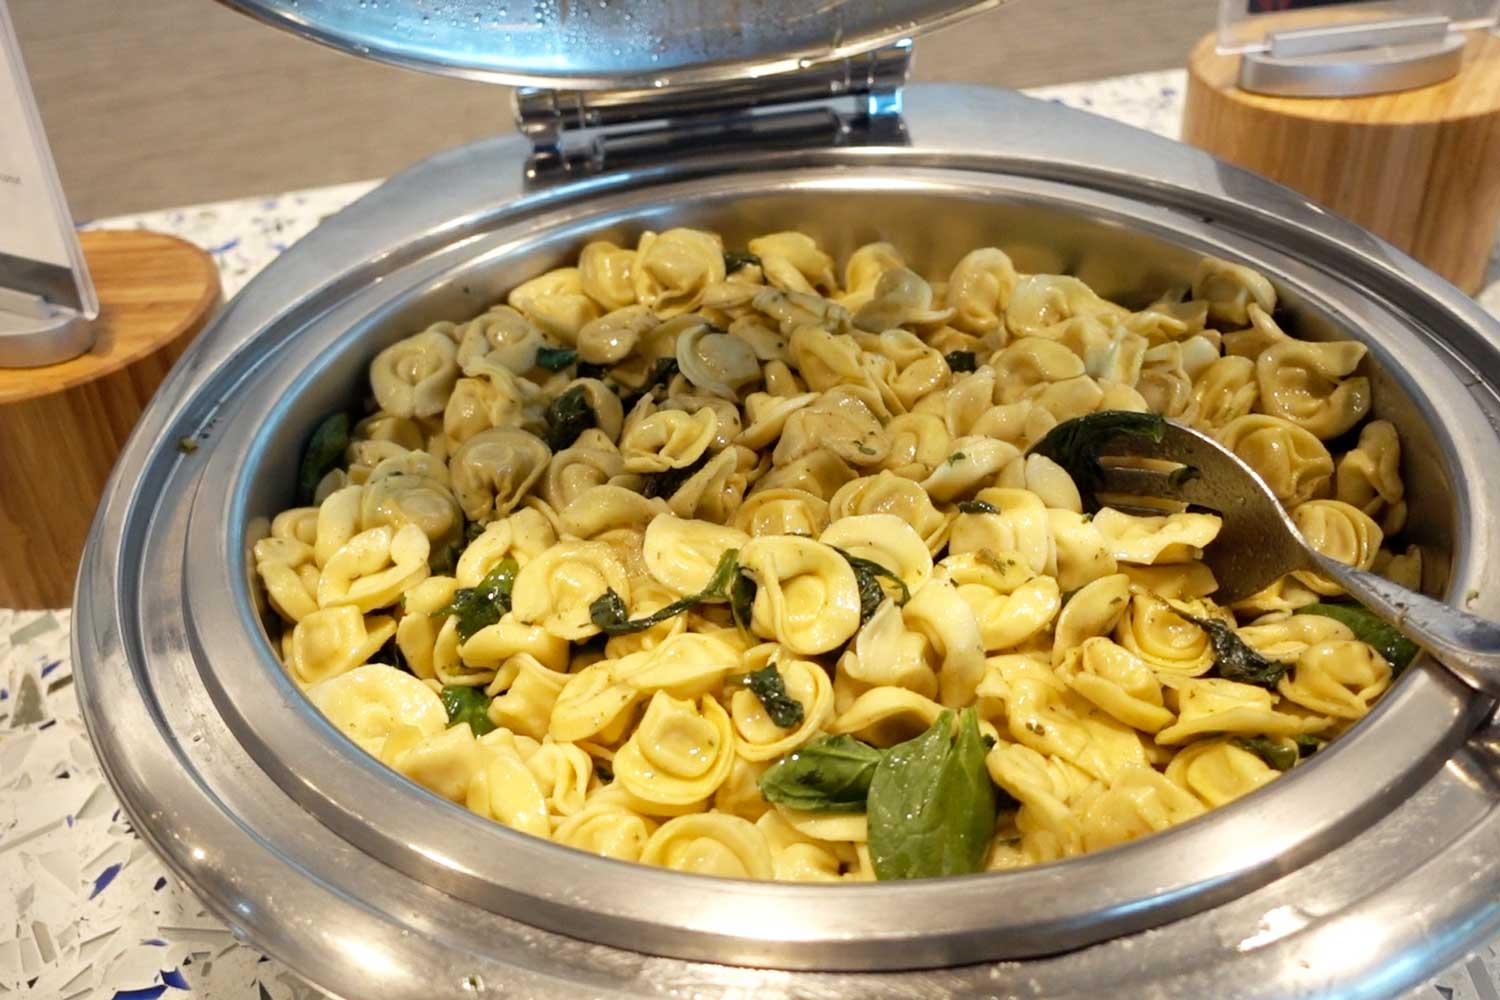 Delta Sky Club in Seattle tortellini